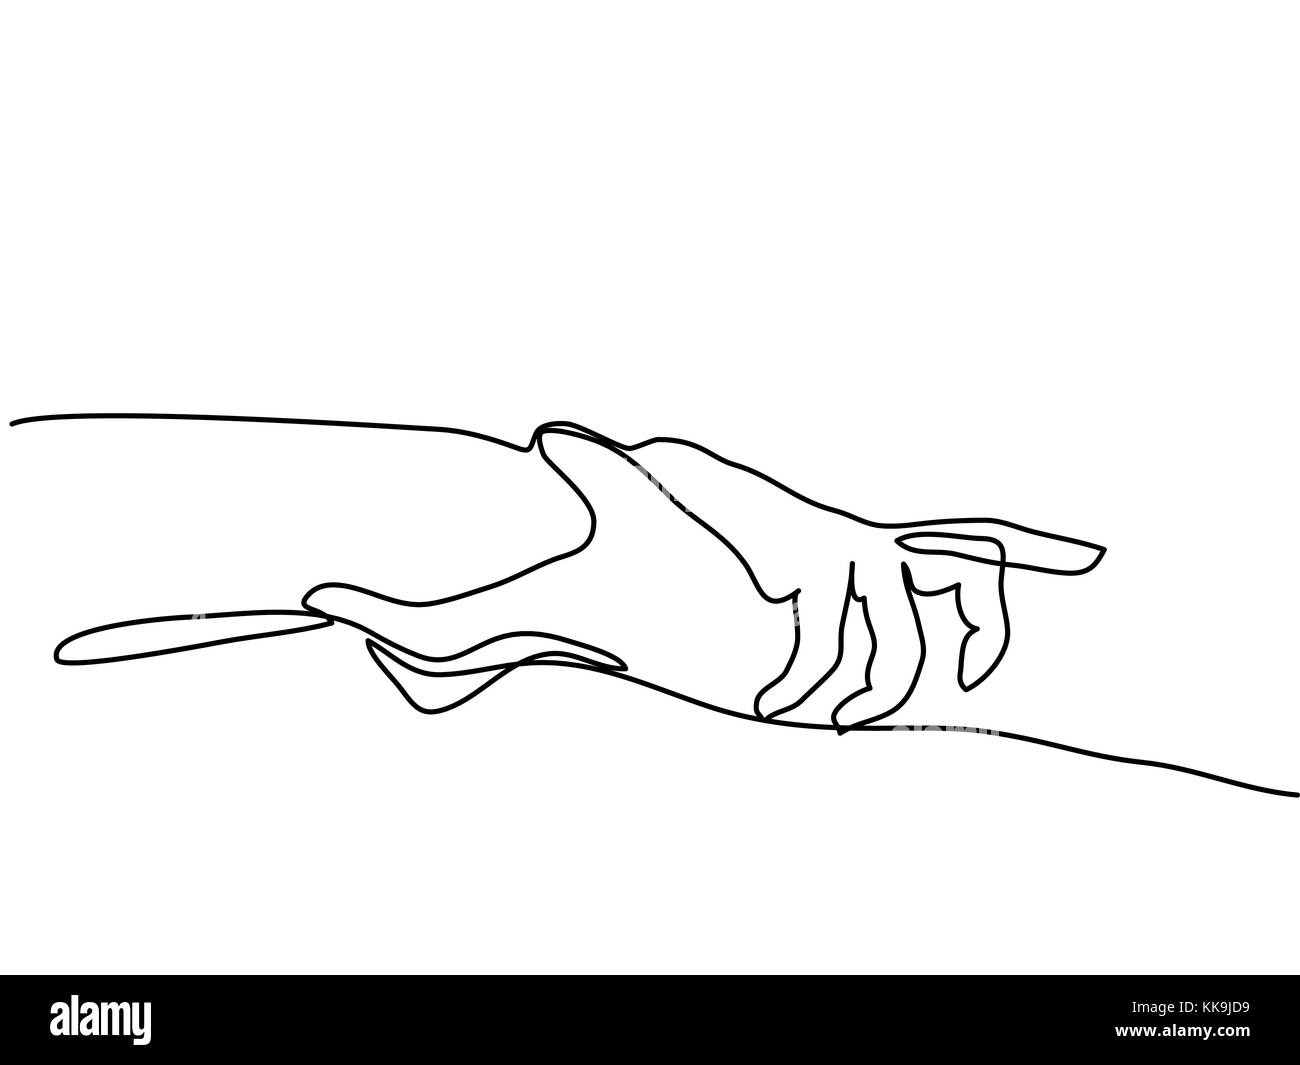 Line Drawing Holding Hands : Adoption symbol stock photos